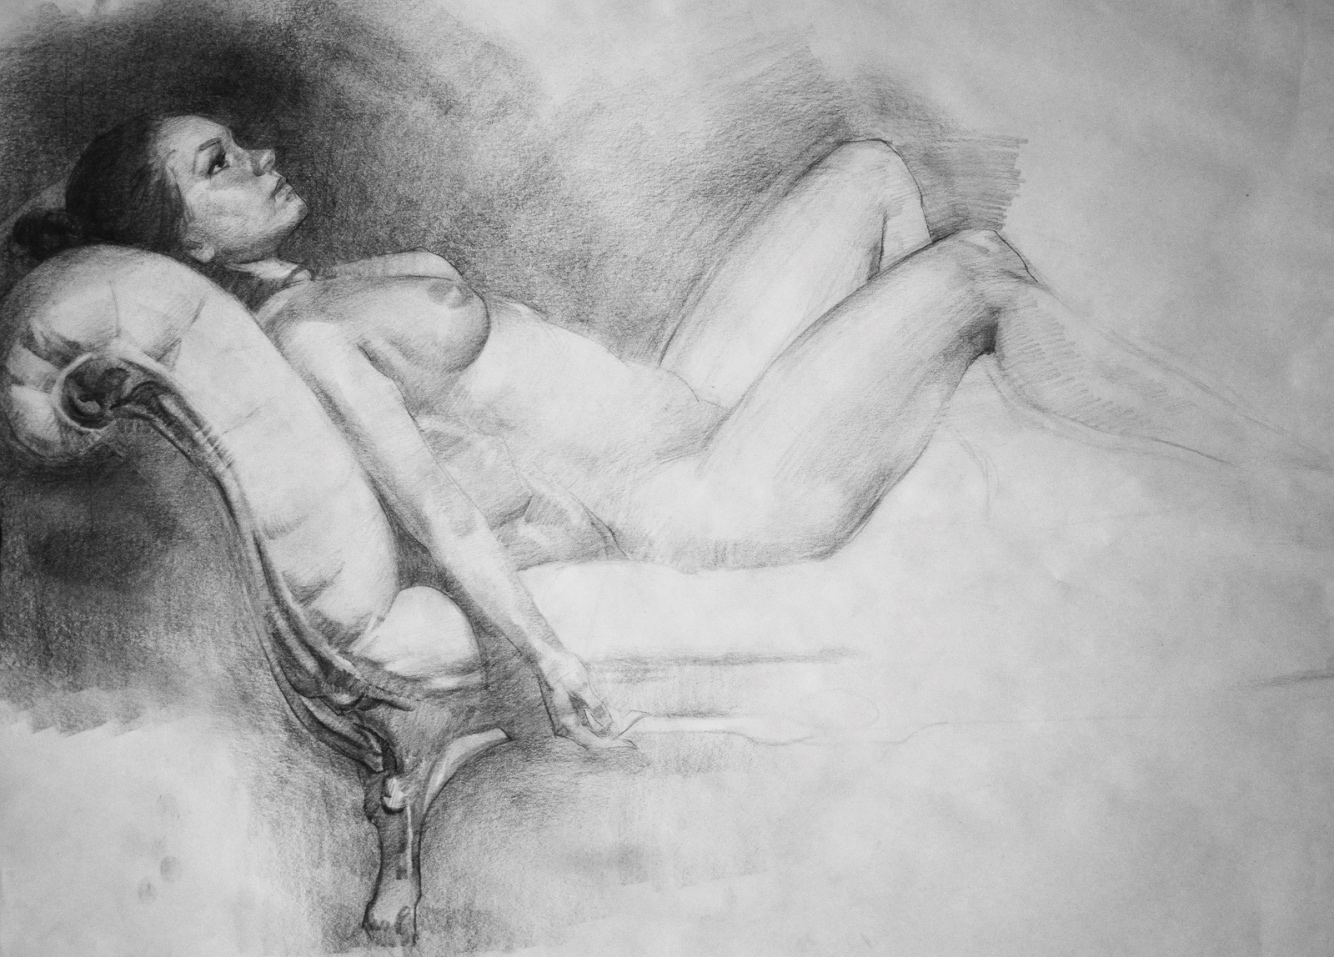 Charcoal_AnatomyStudies_Female_06.jpg